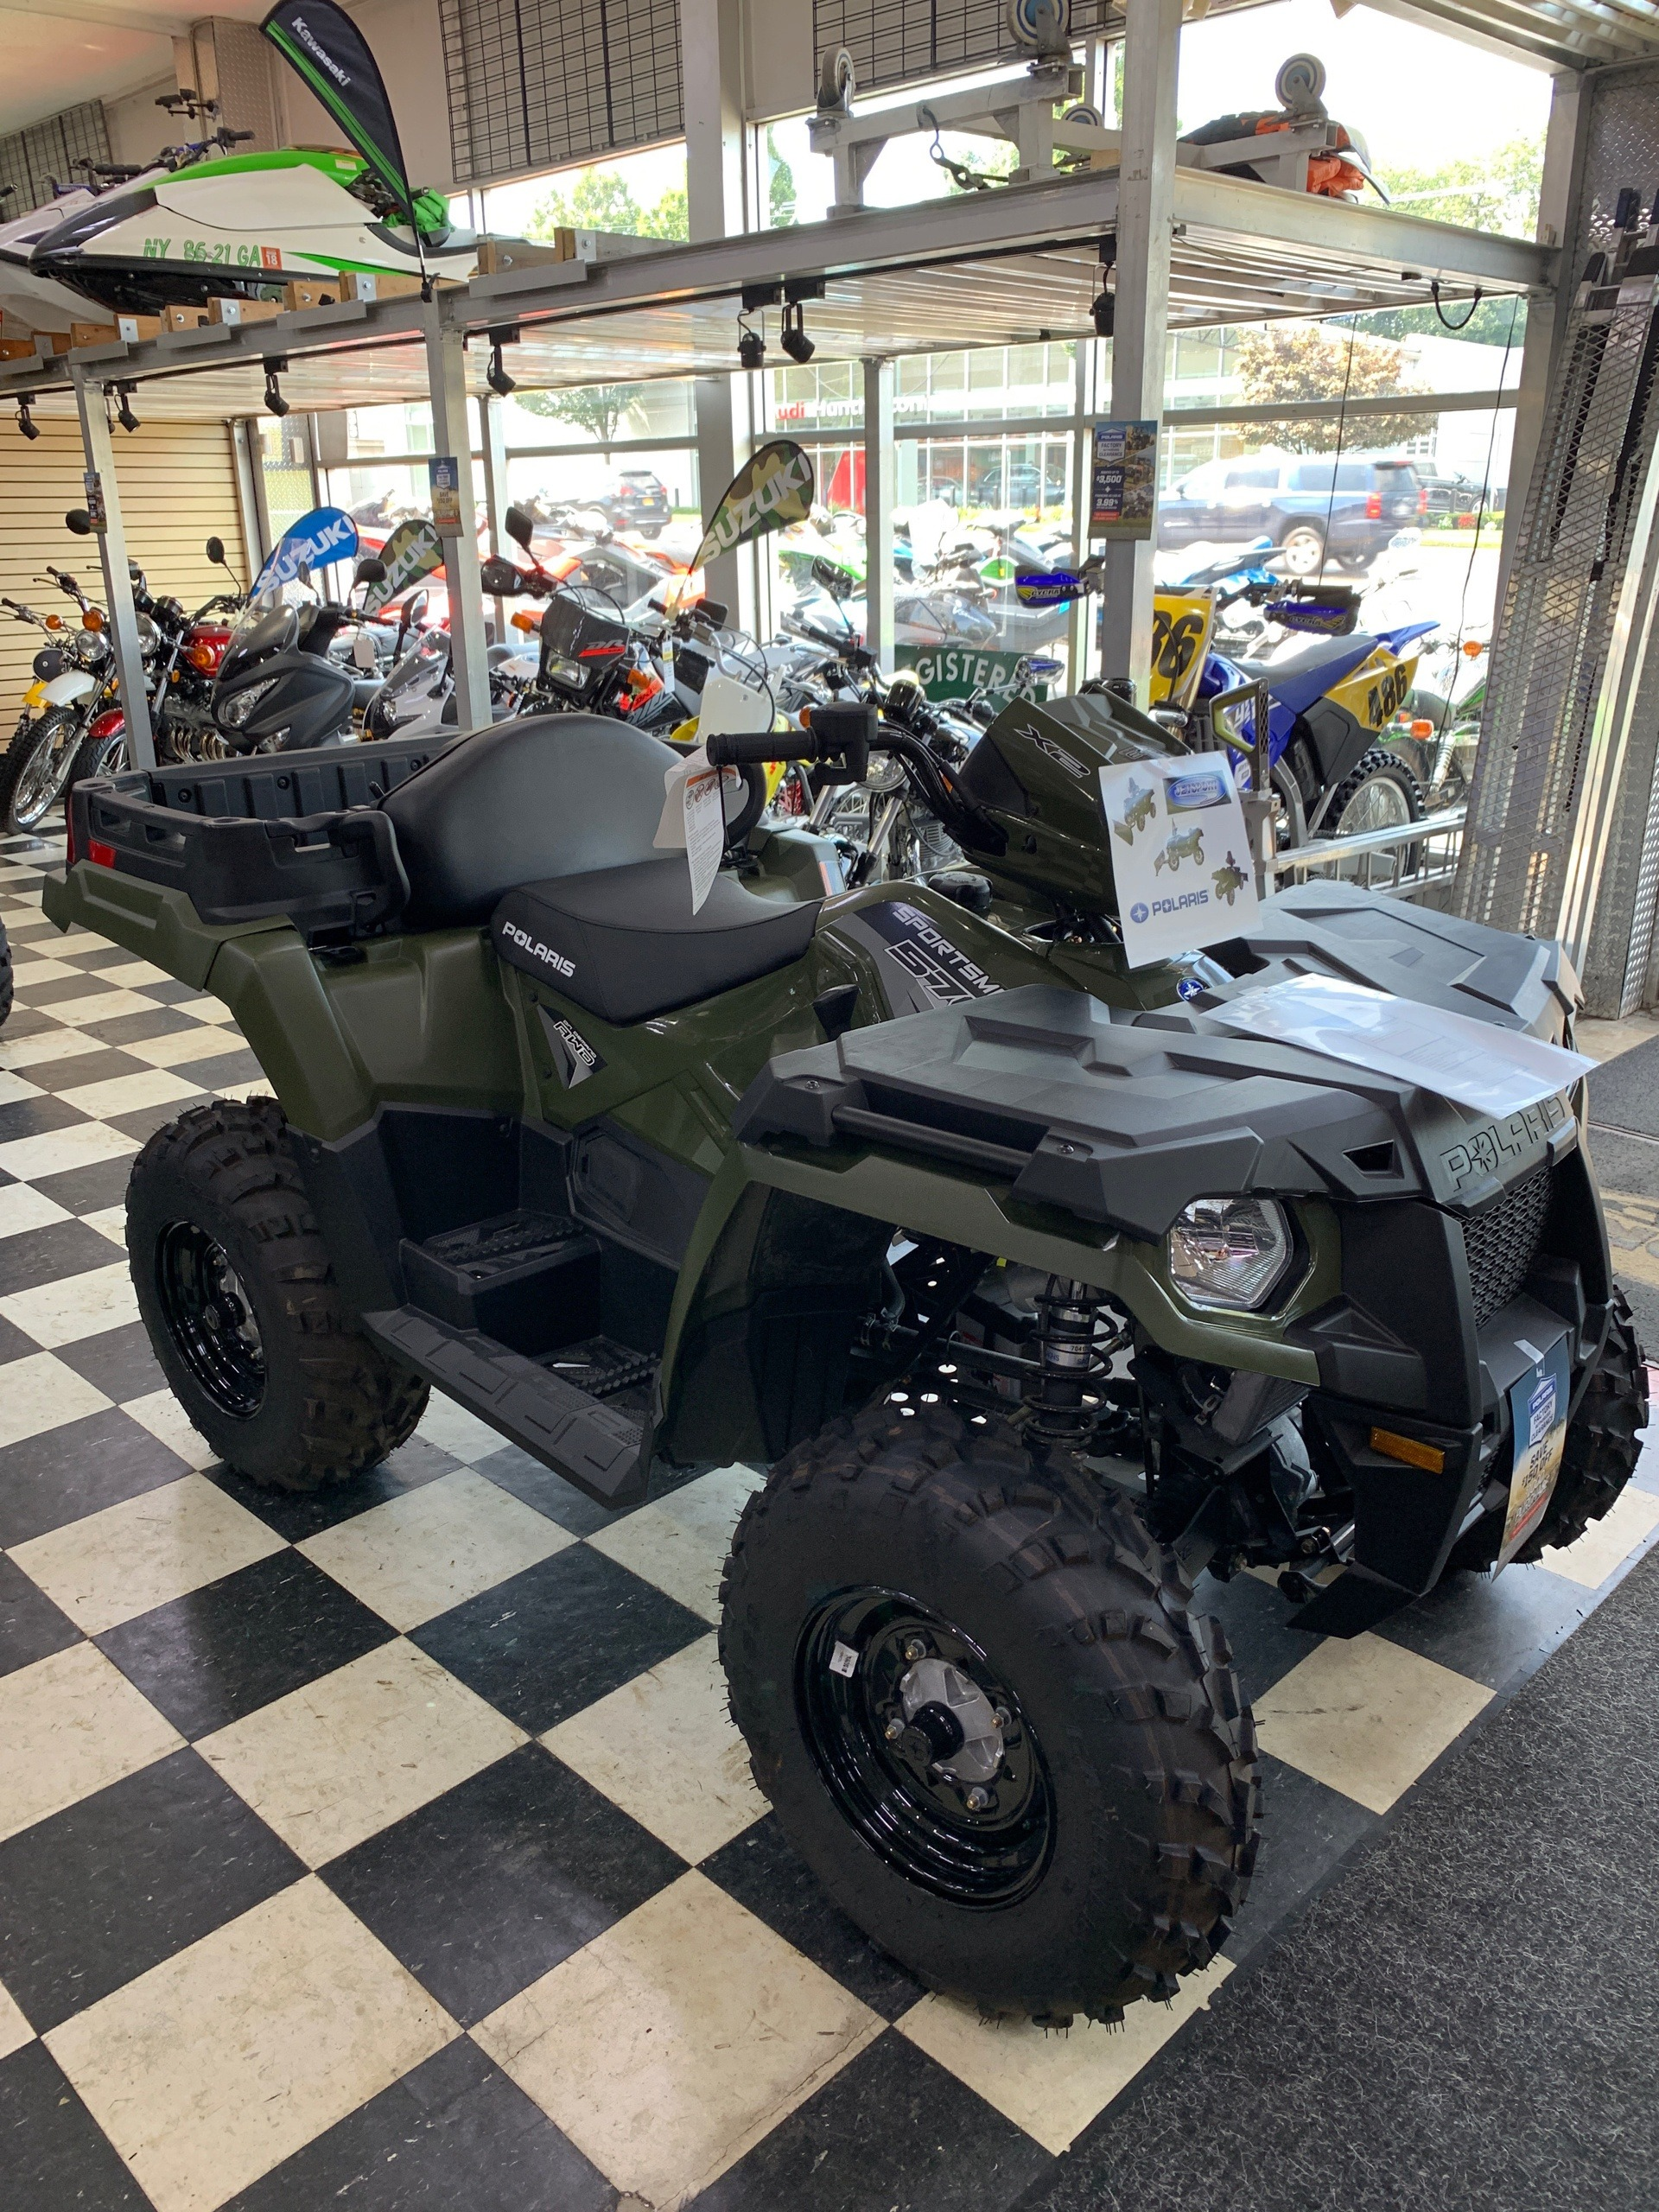 2019 Polaris Sportsman X2 570 in Huntington Station, New York - Photo 1